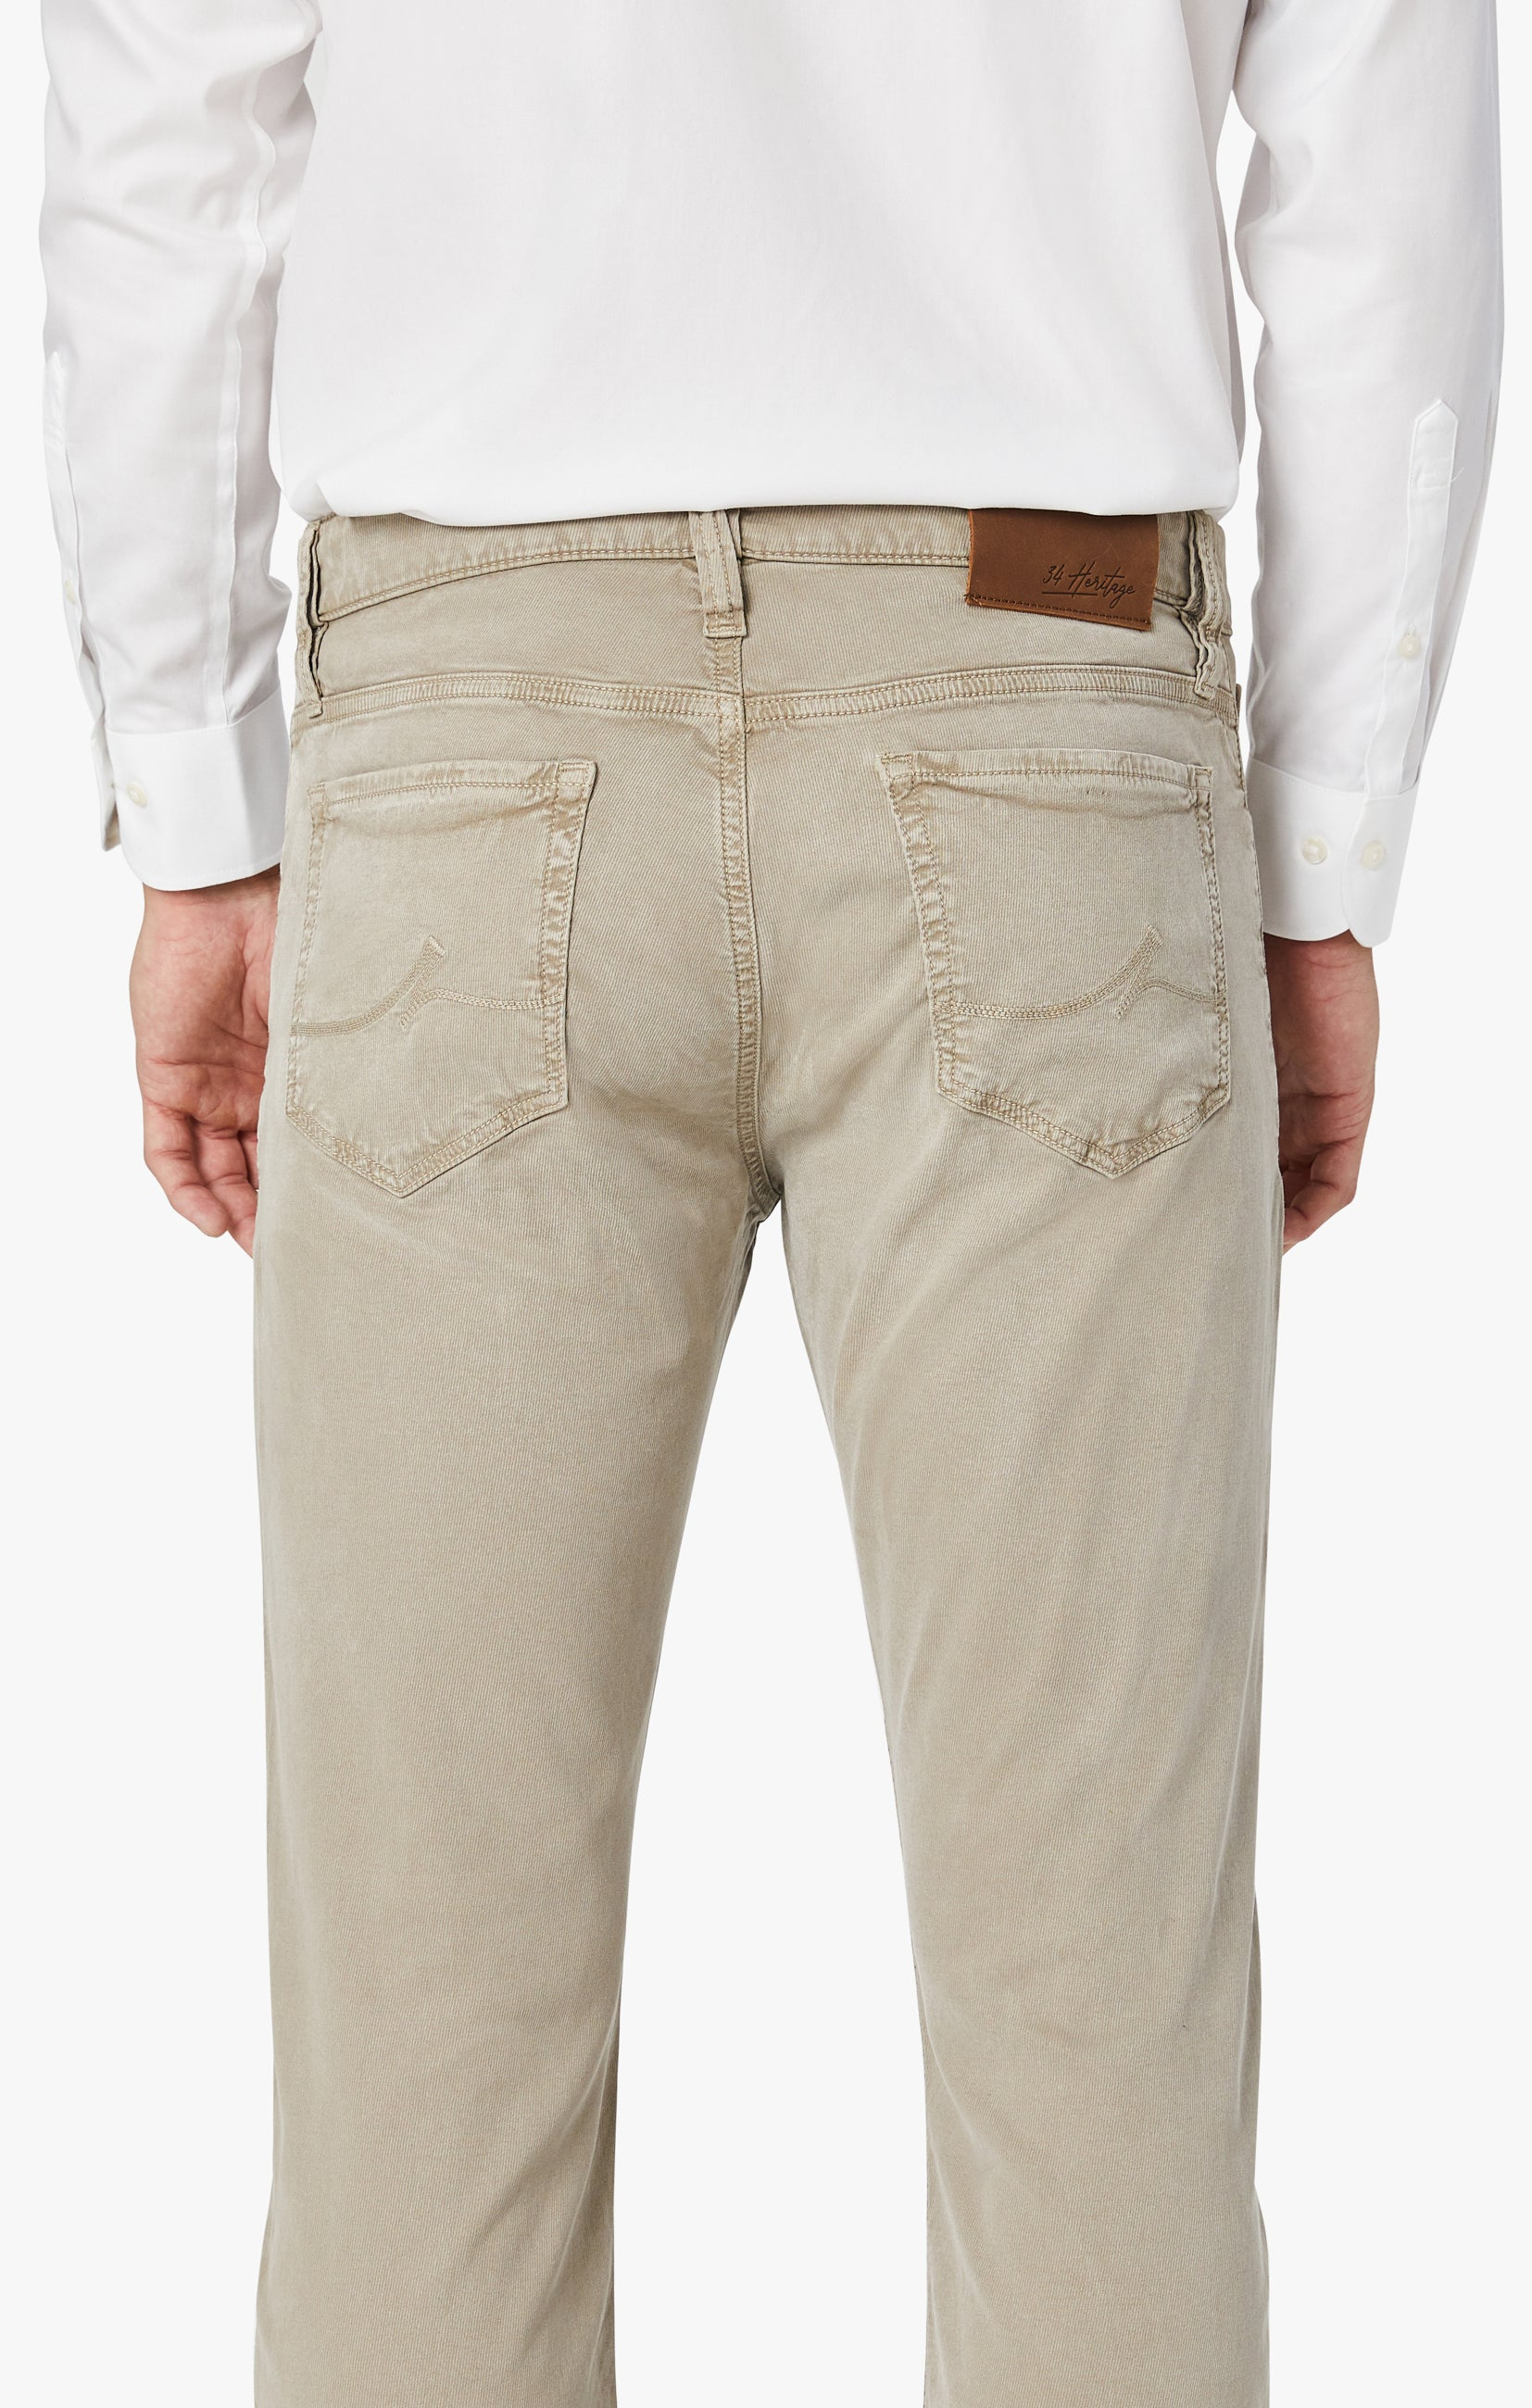 Courage Straight Leg Pants in Mushroom Soft Touch Image 7